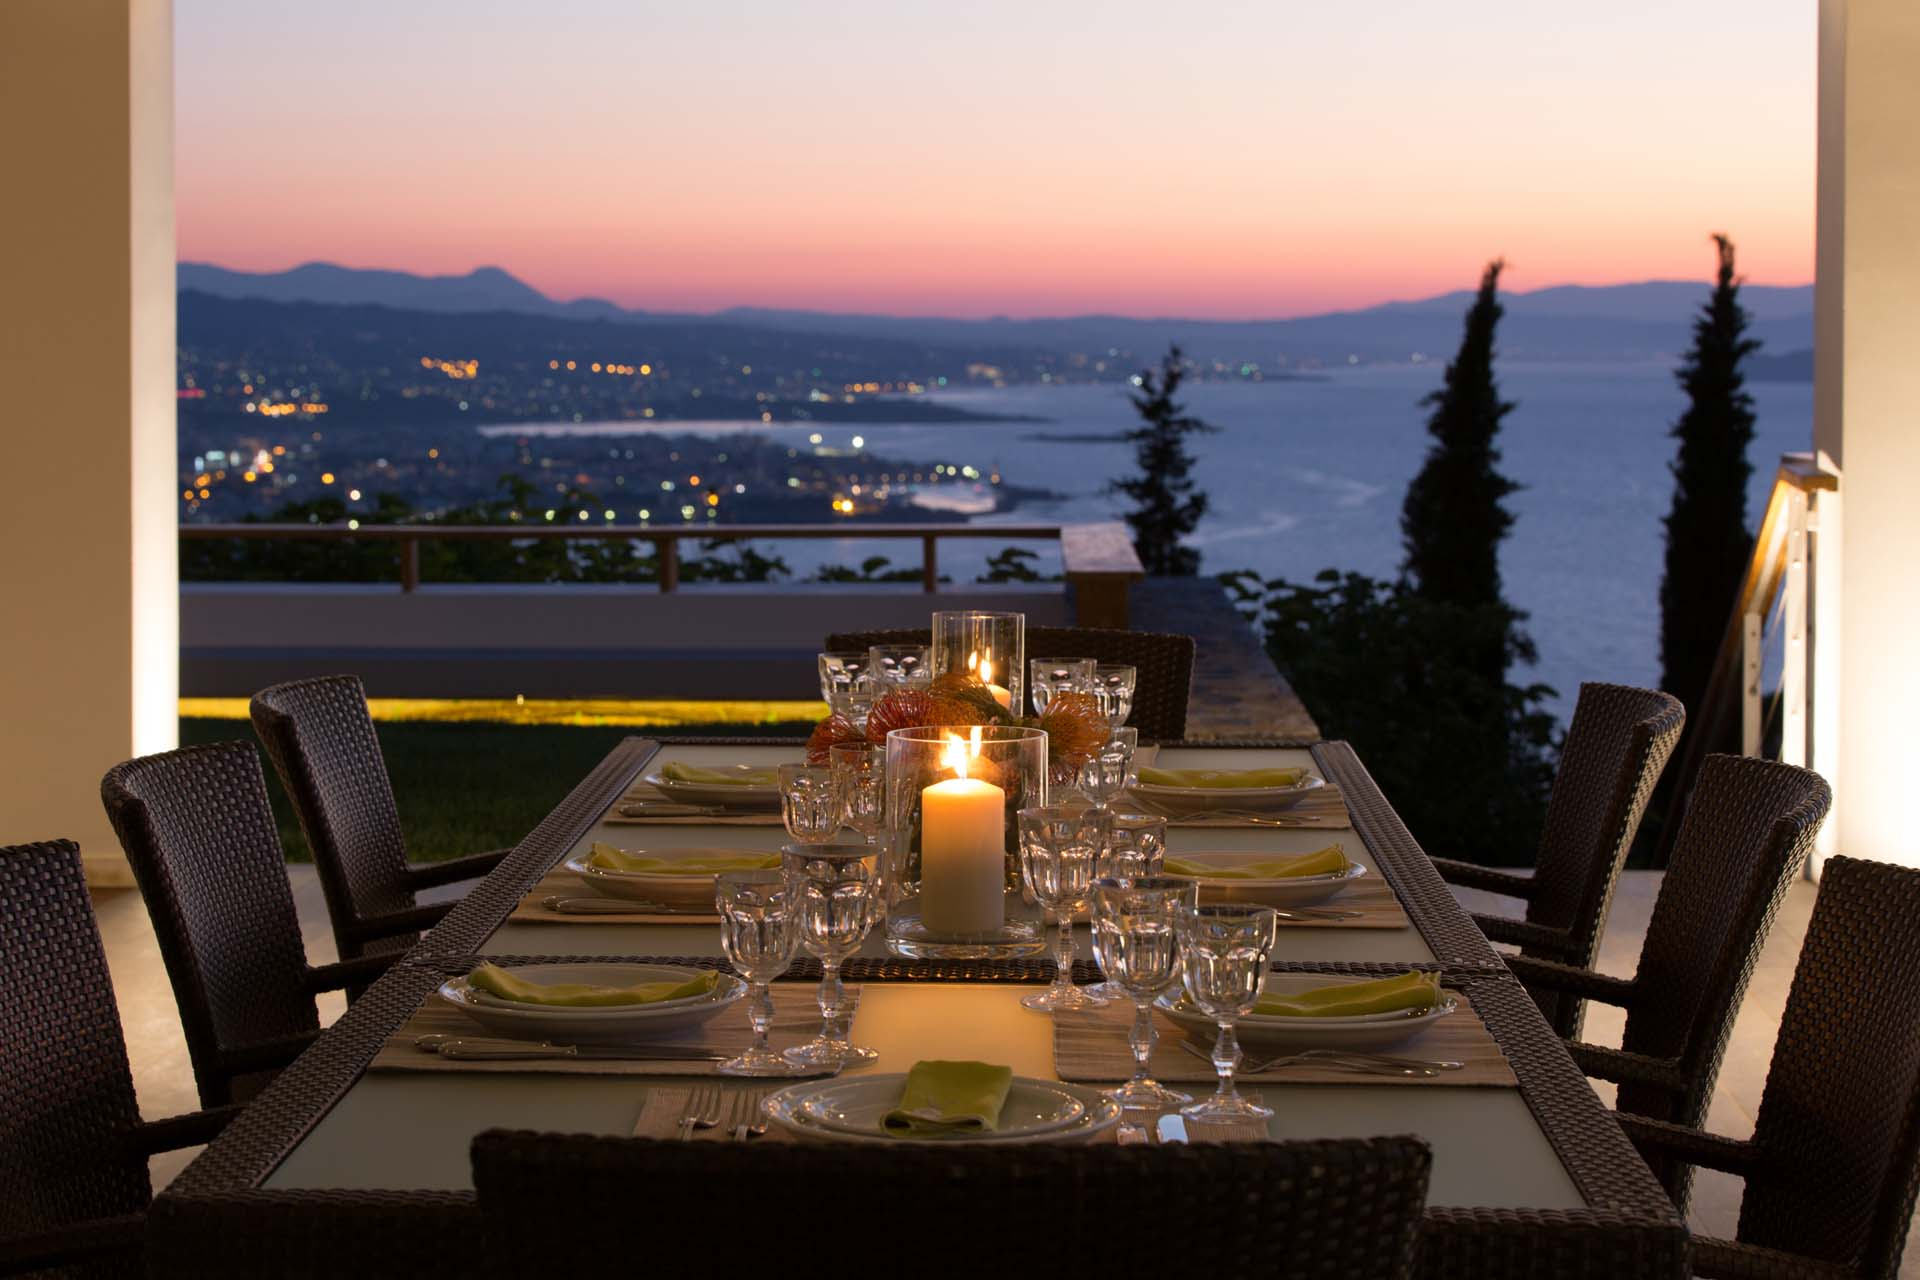 Dining outdoors with stunning view of the city lights. Quite an experience